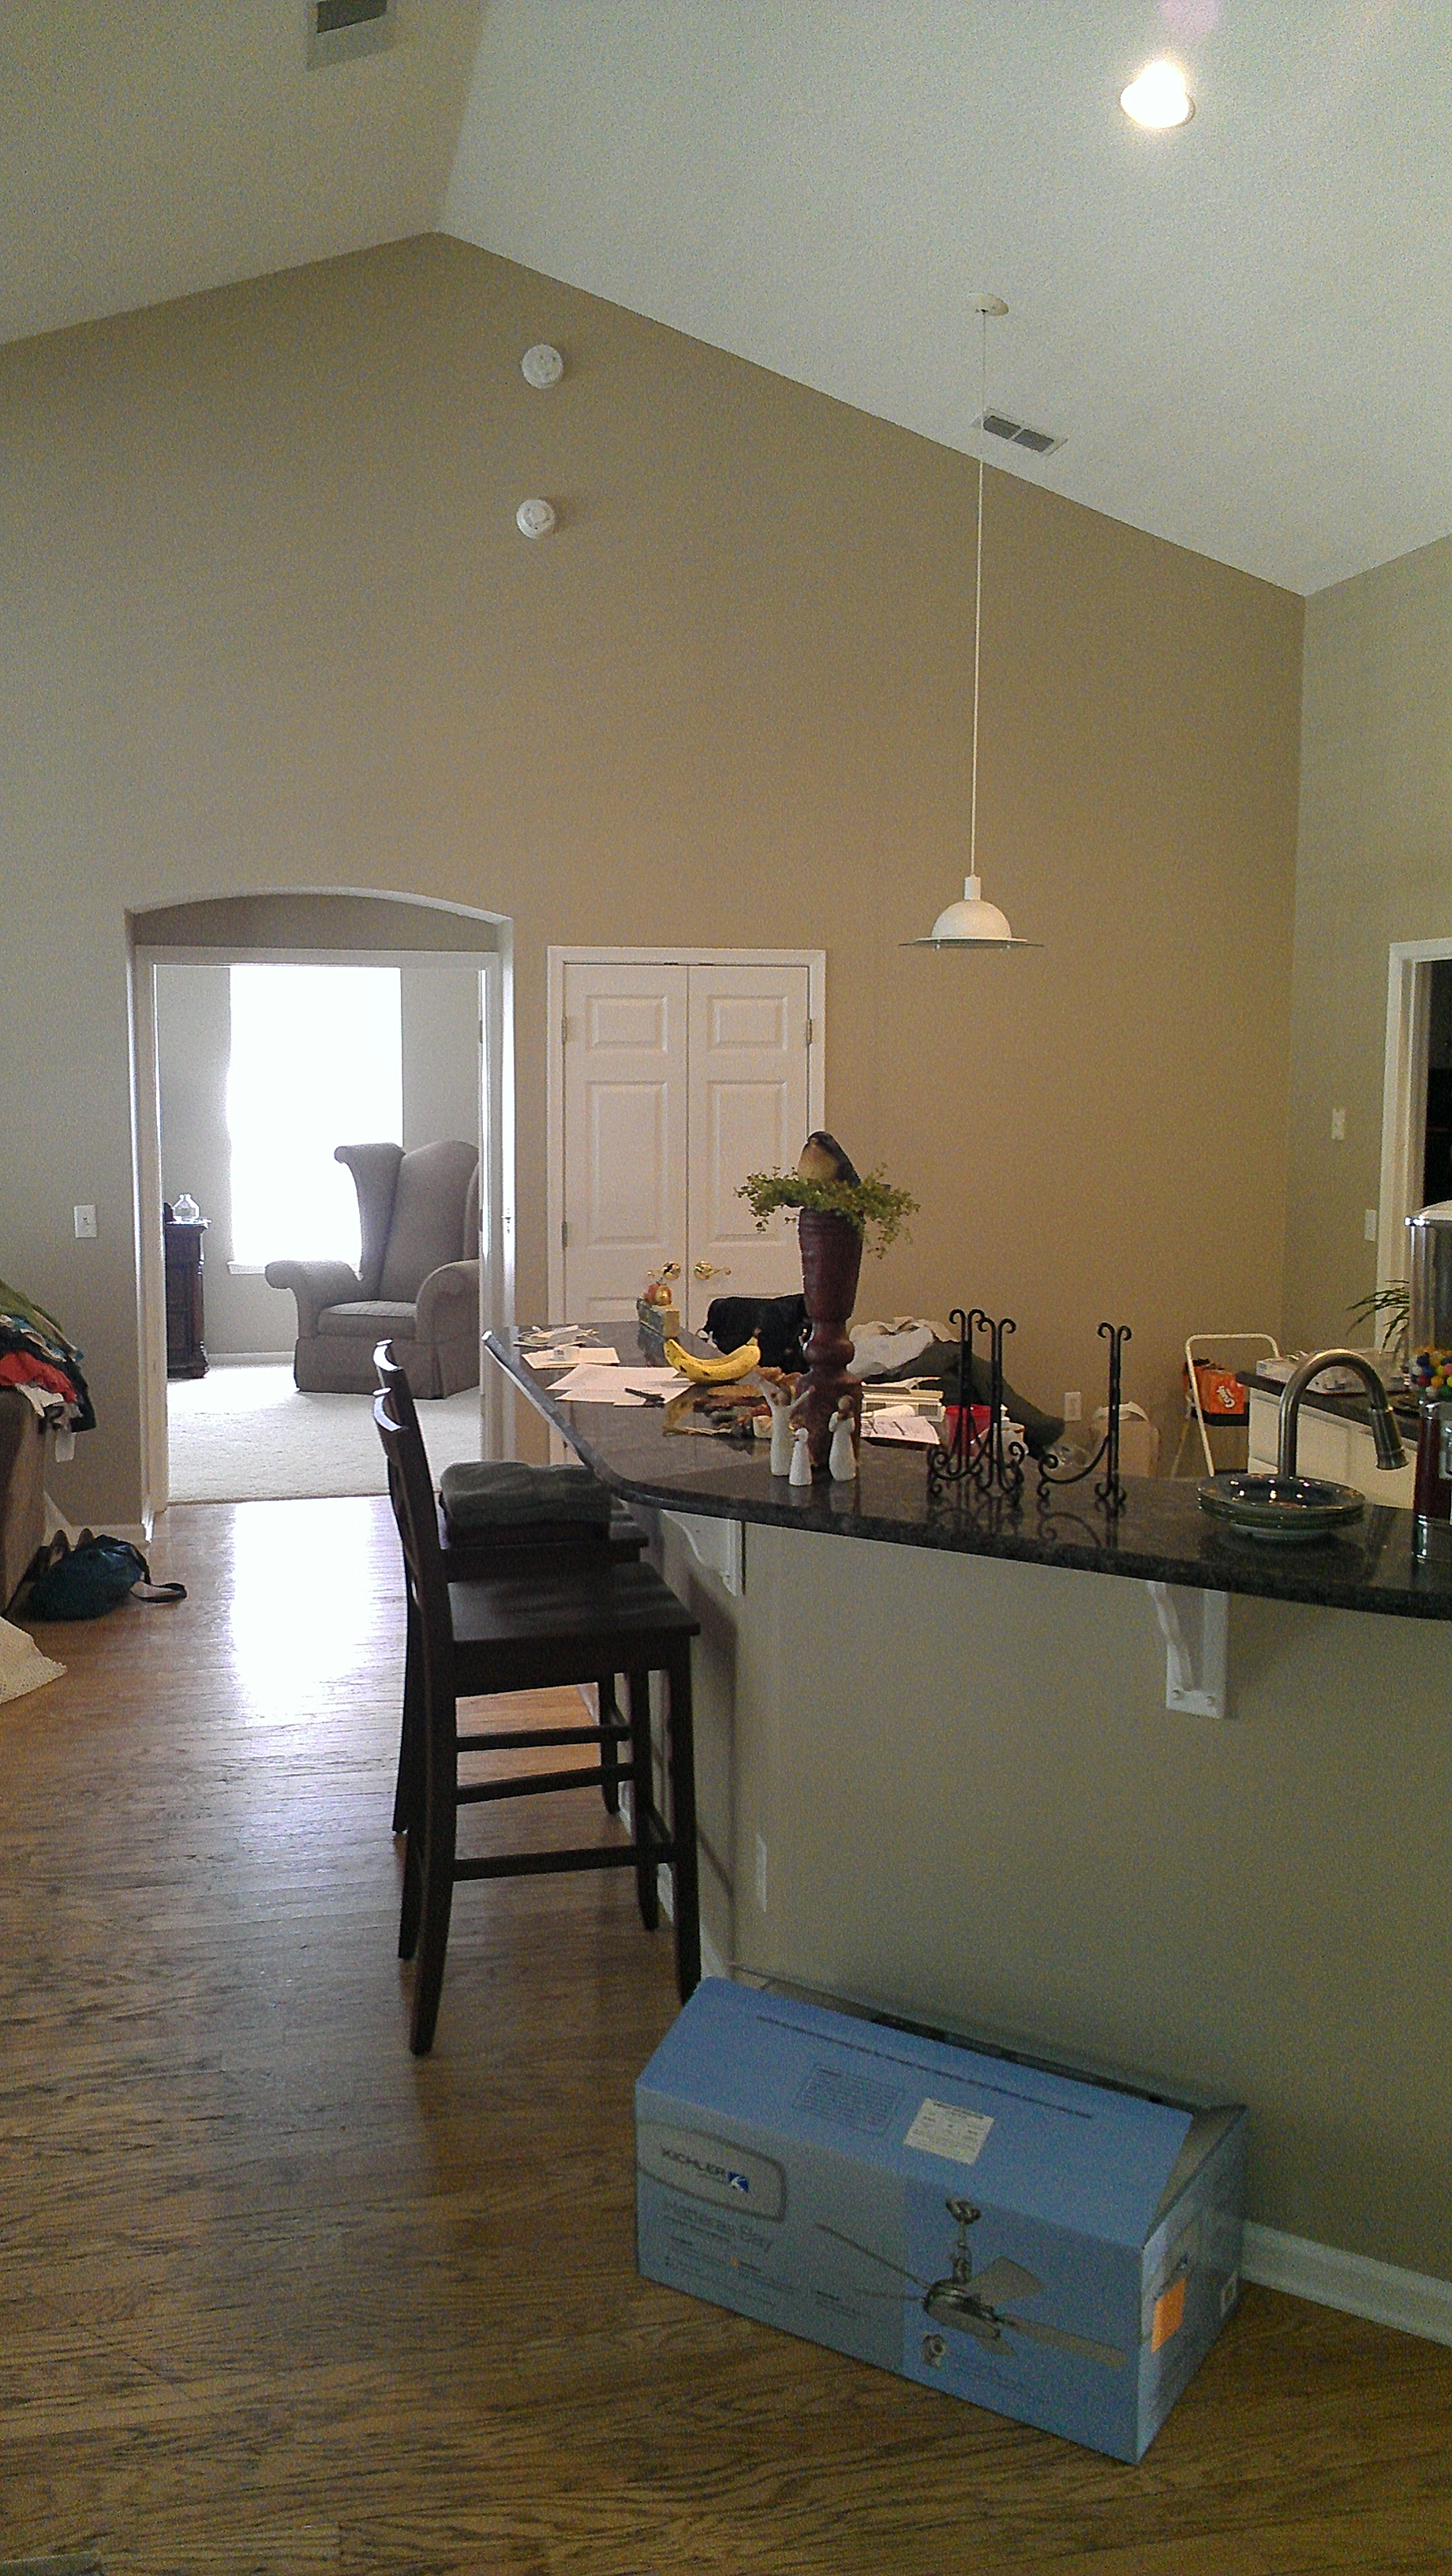 Interior painting contractor for jacksonville home projects - Interior painting jacksonville fl ...